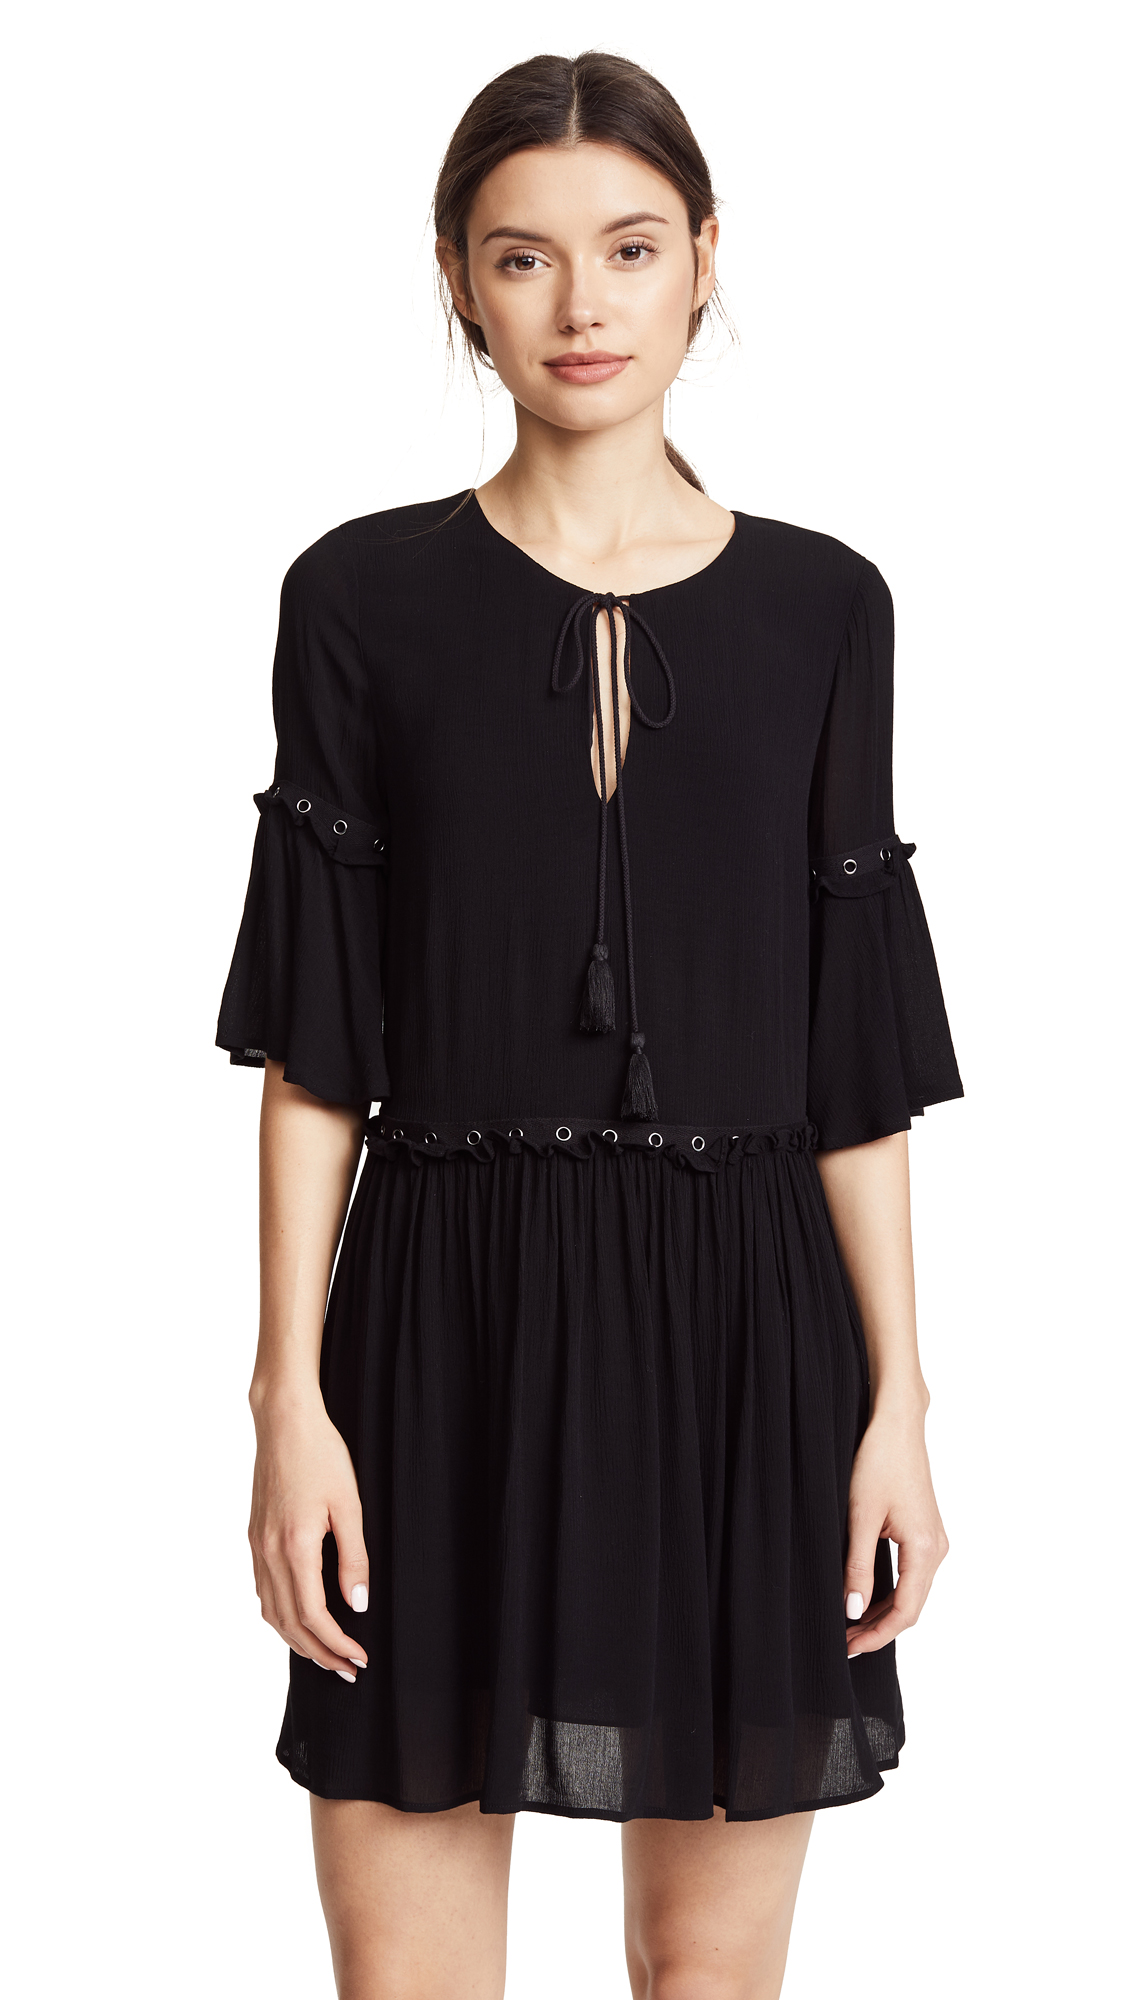 Rebecca Minkoff Helen Dress In Black